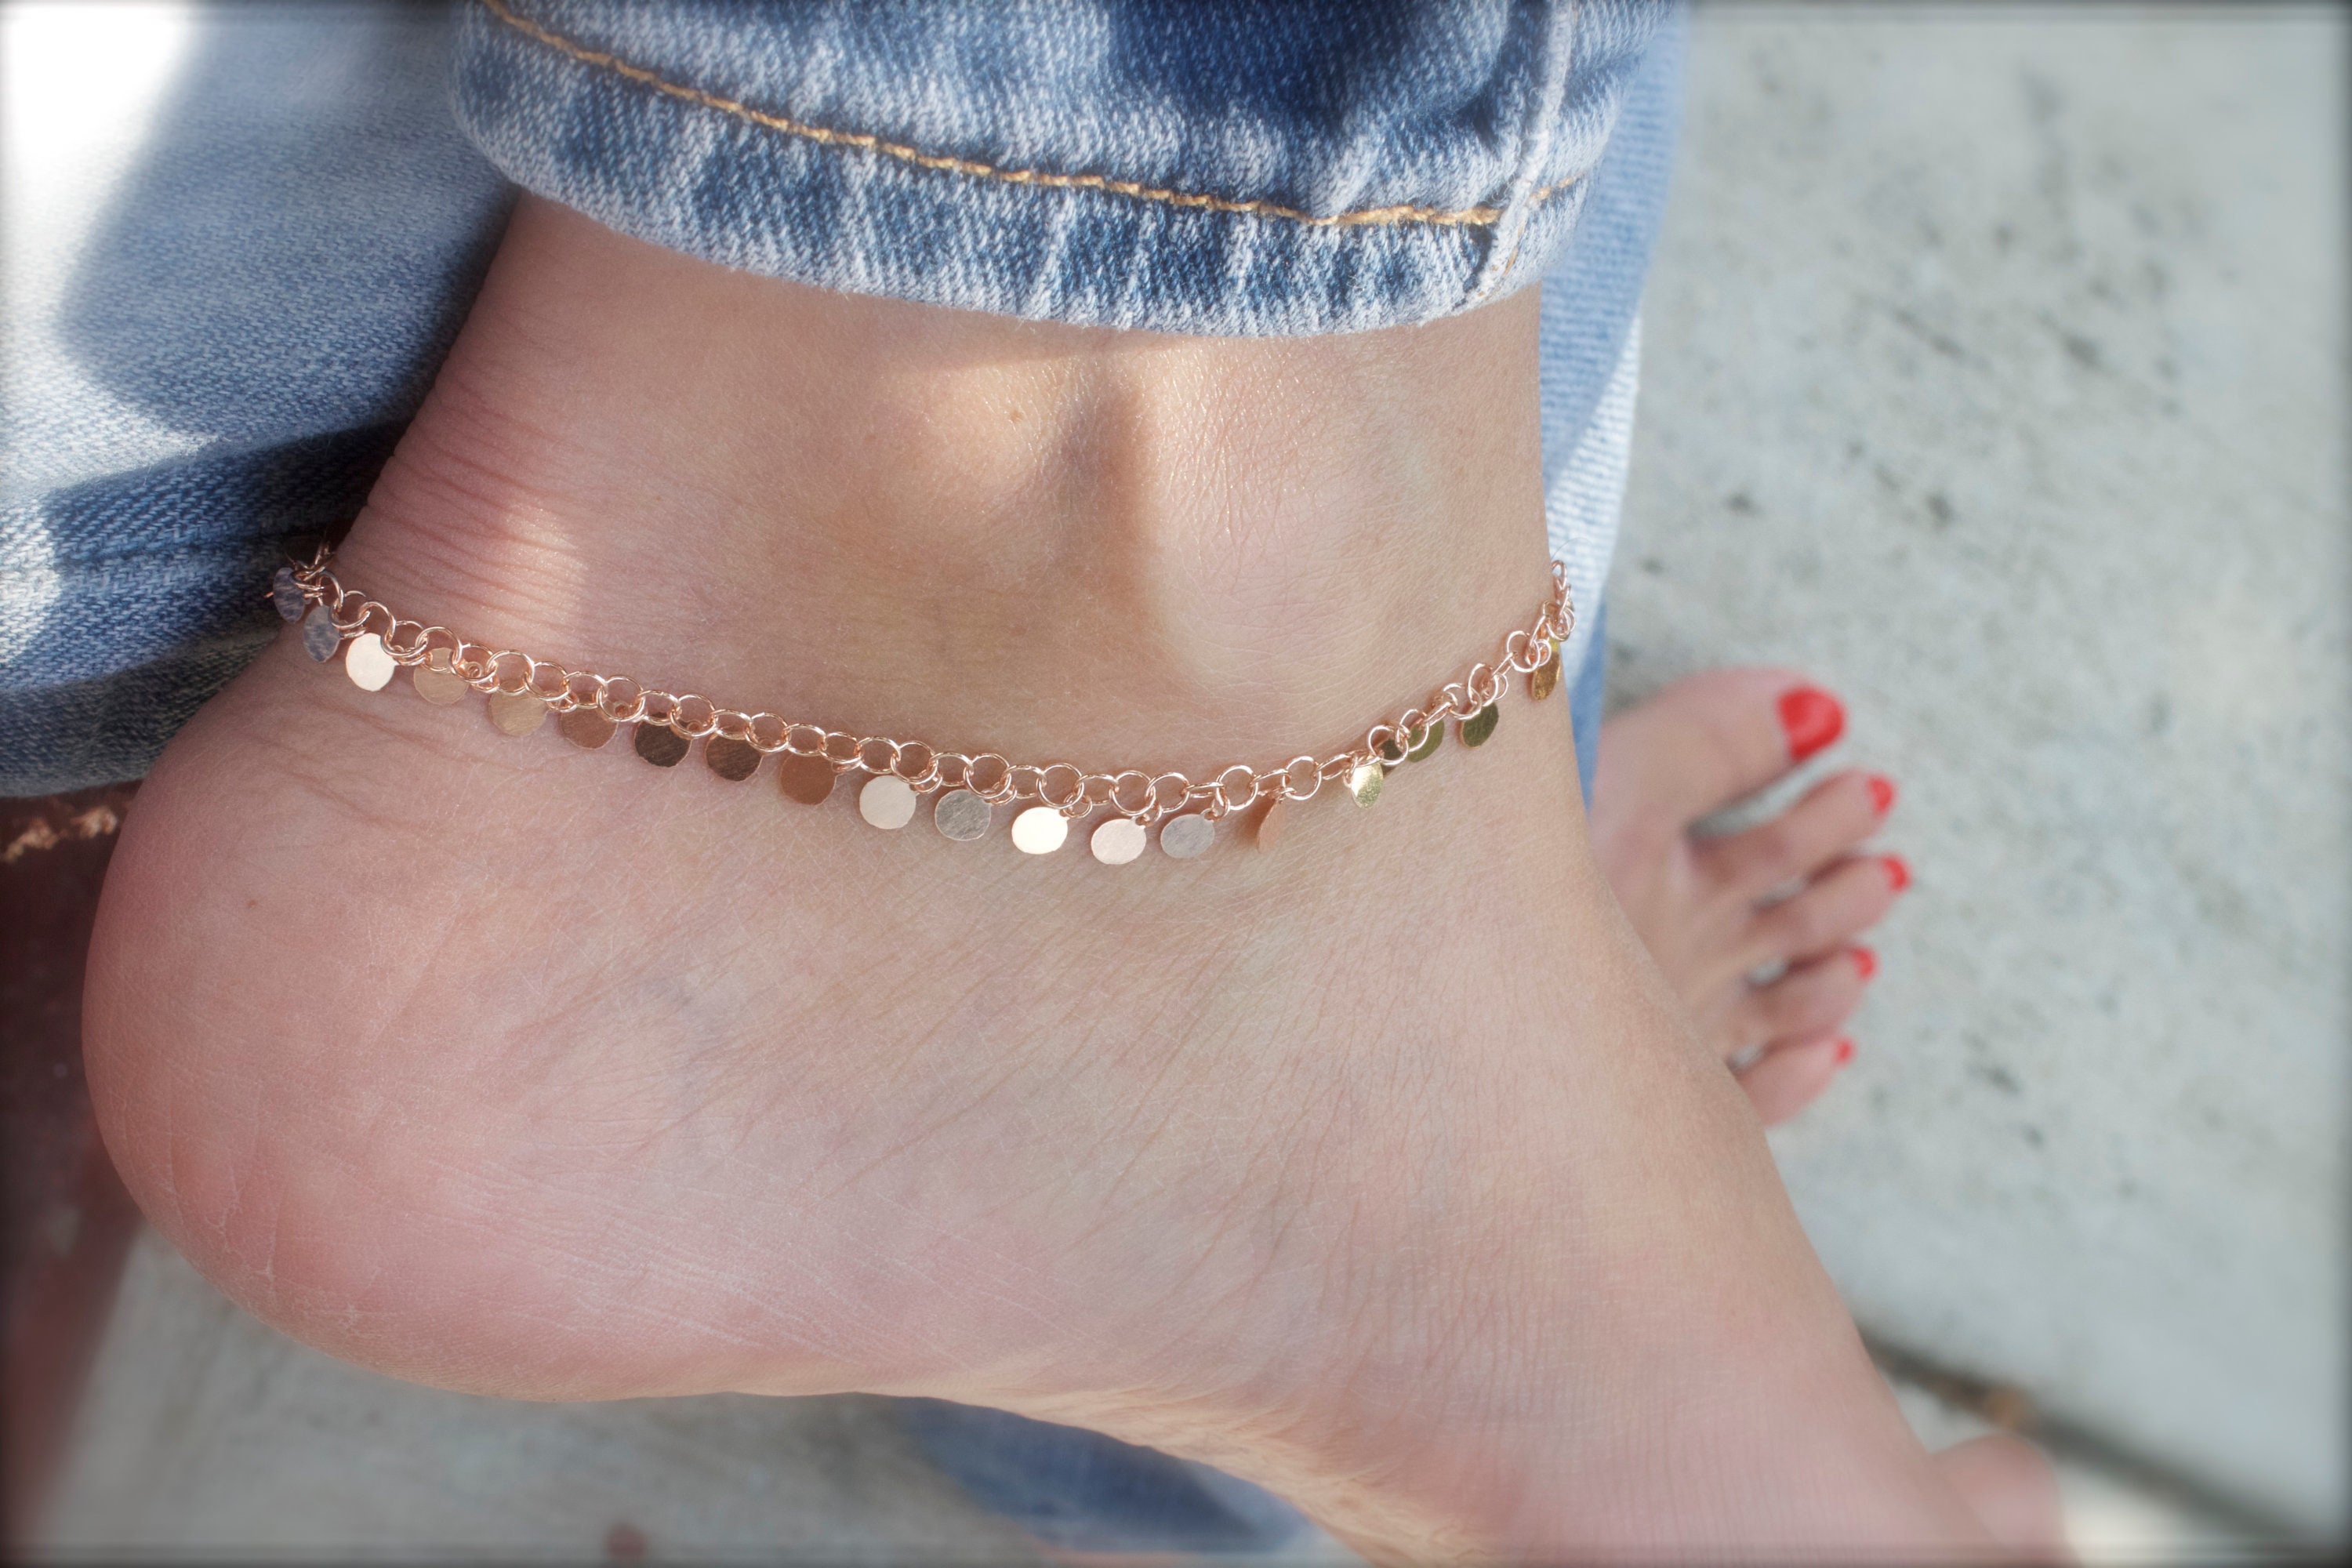 sandals fashion from anklets jewelry in fine pie boho beach item wedding crystal barefoot anklet sexy chain foot bracelet scorpion leg female